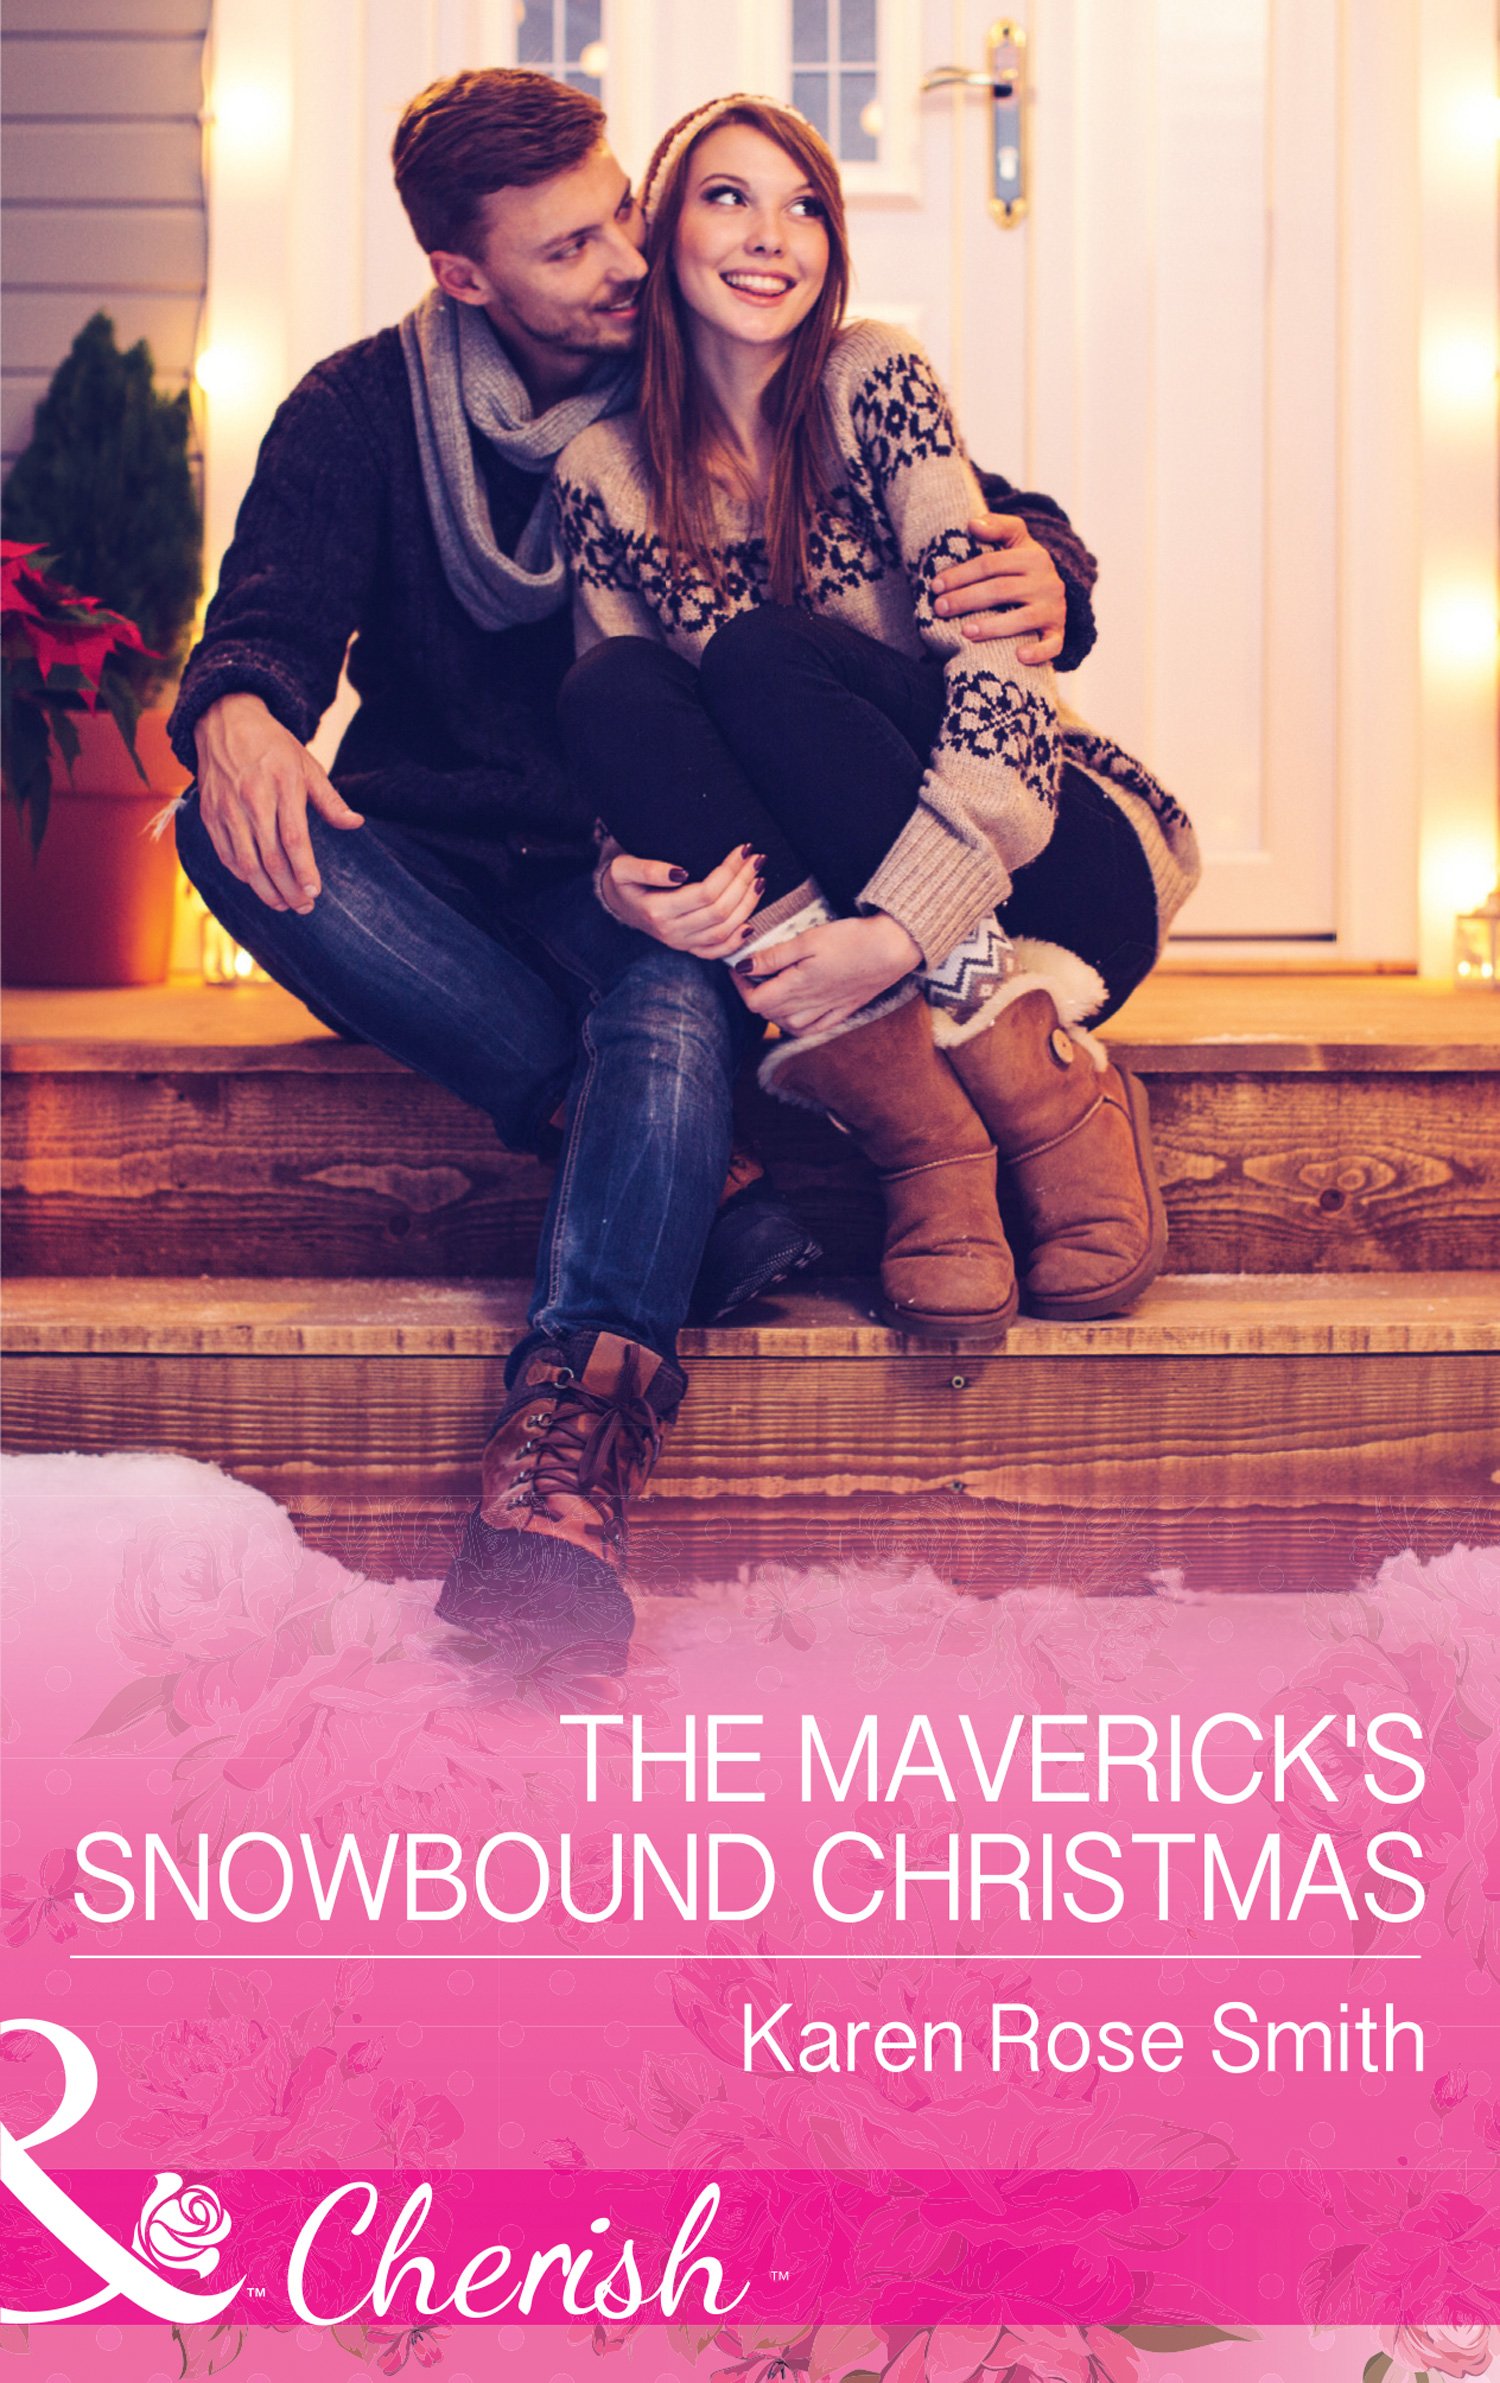 The Maverick's Snowbound Christmas